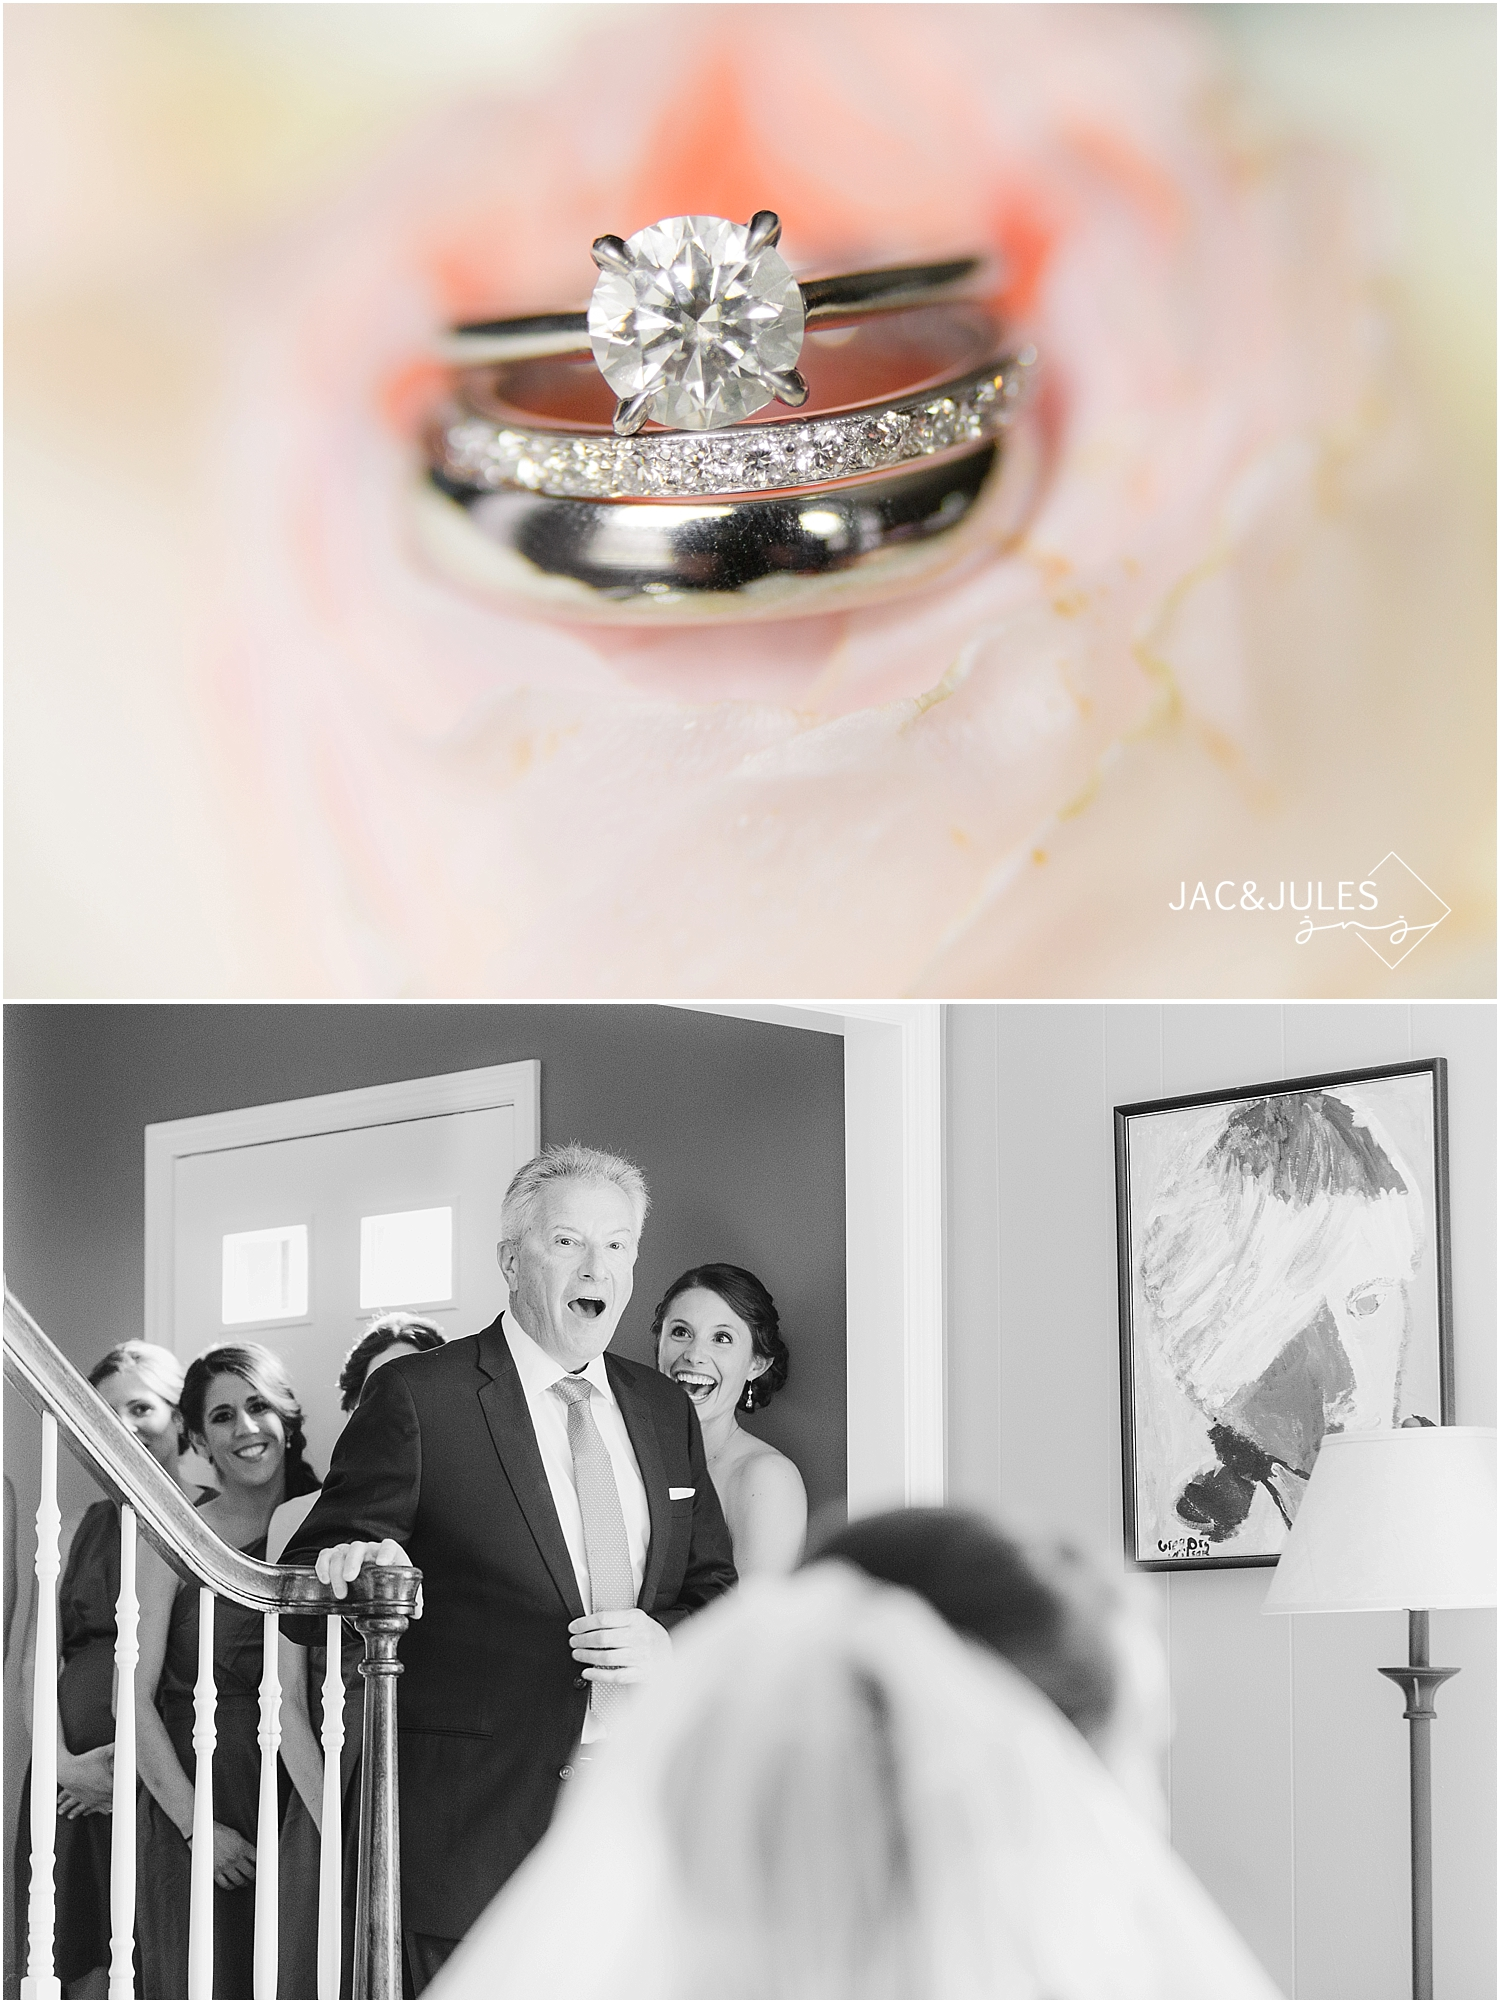 jacnjules photographs brides first look with dad